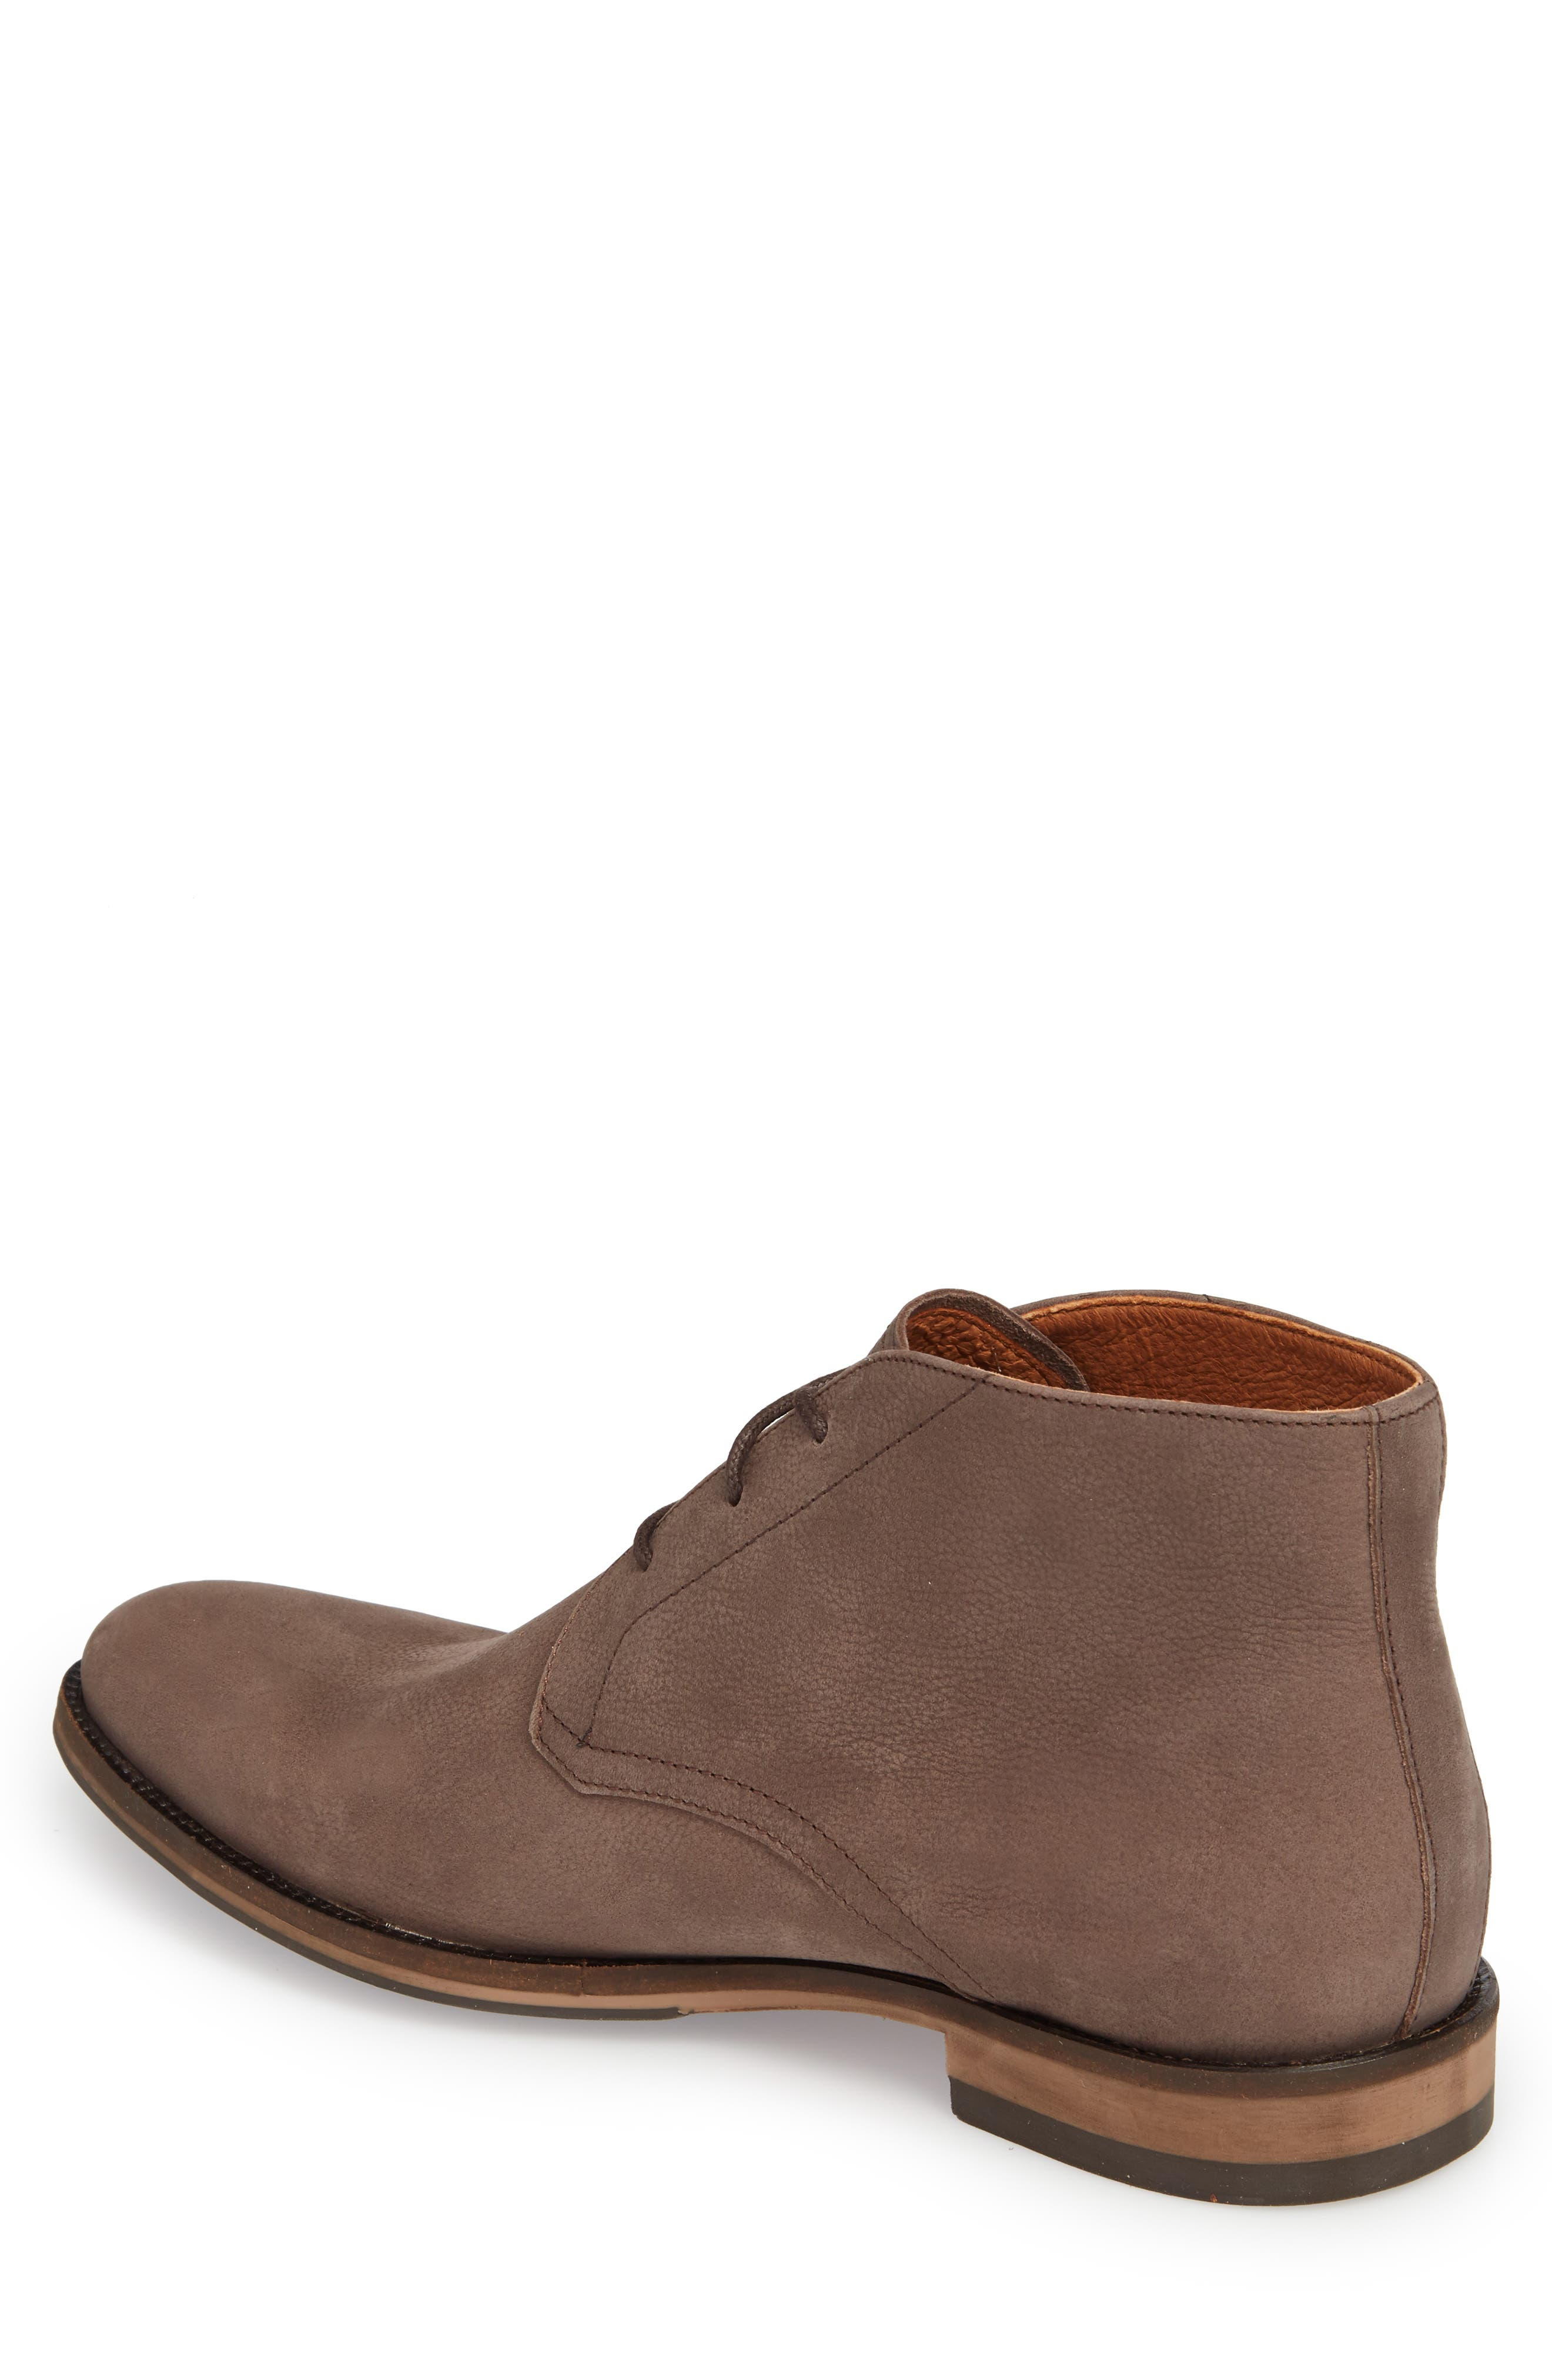 Barber Road Chukka Boot,                             Alternate thumbnail 2, color,                             Tobacco Leather